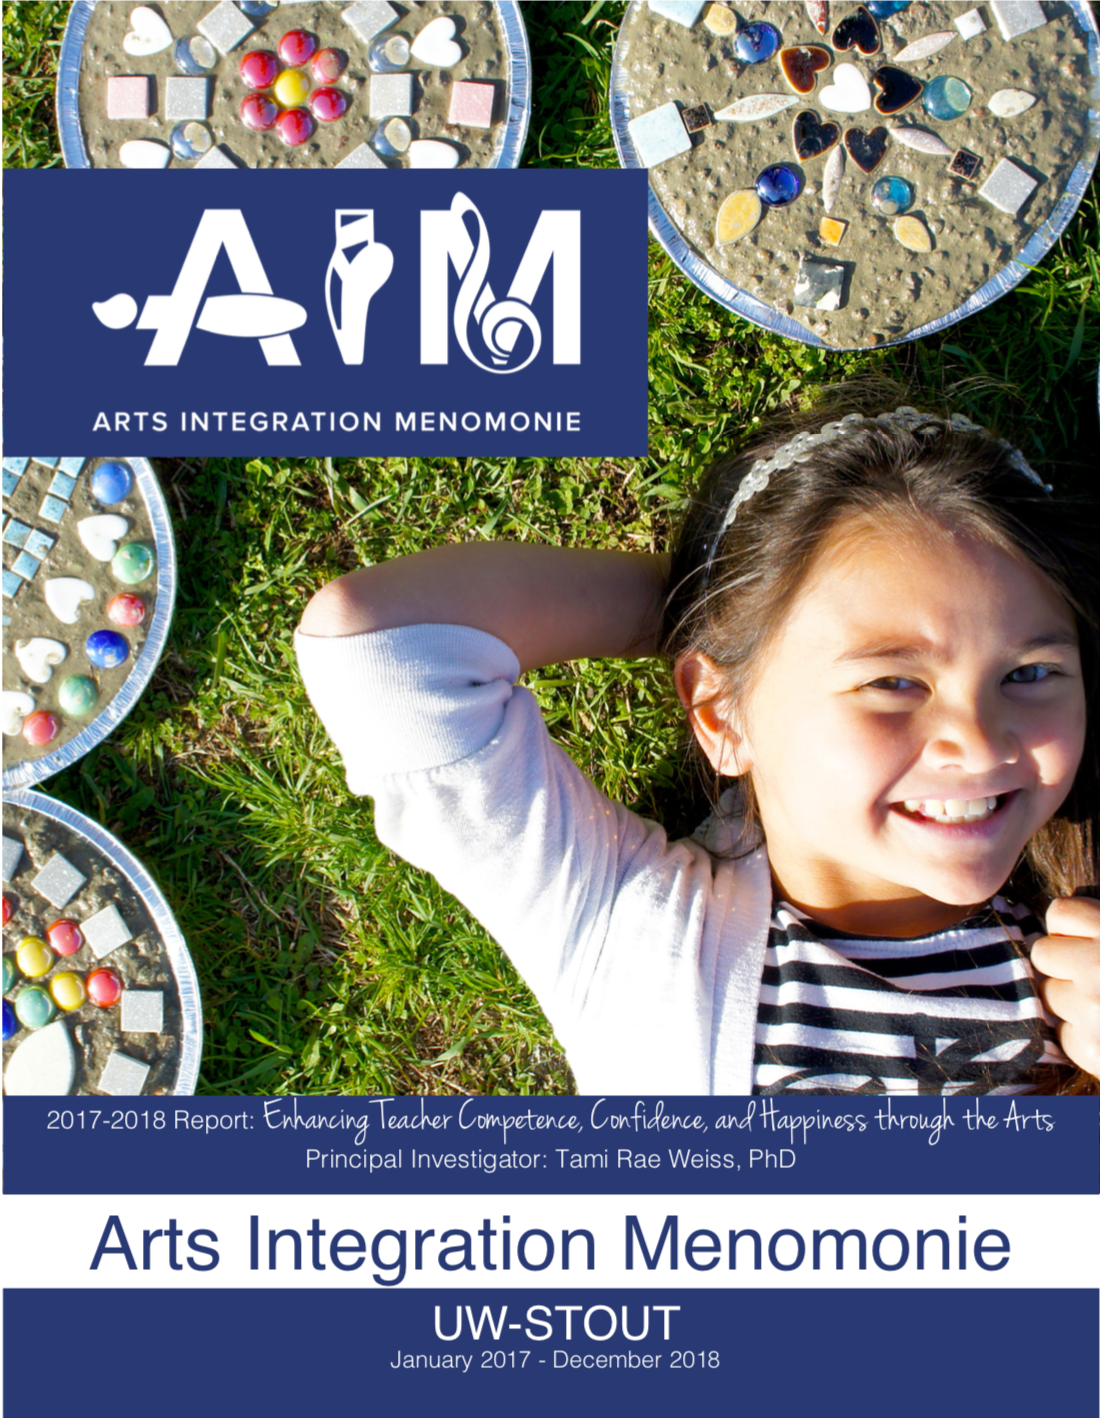 CLICK ON THE IMAGE ABOVE TO READ THE 2-YEAR (2017-18) REPORT FOR A.I.M AT UW-STOUT, EVALUATING ITS P.A.I.N.T. INTERNSHIP PROGRAM FOR PRE-SERVICE TEACHERS.